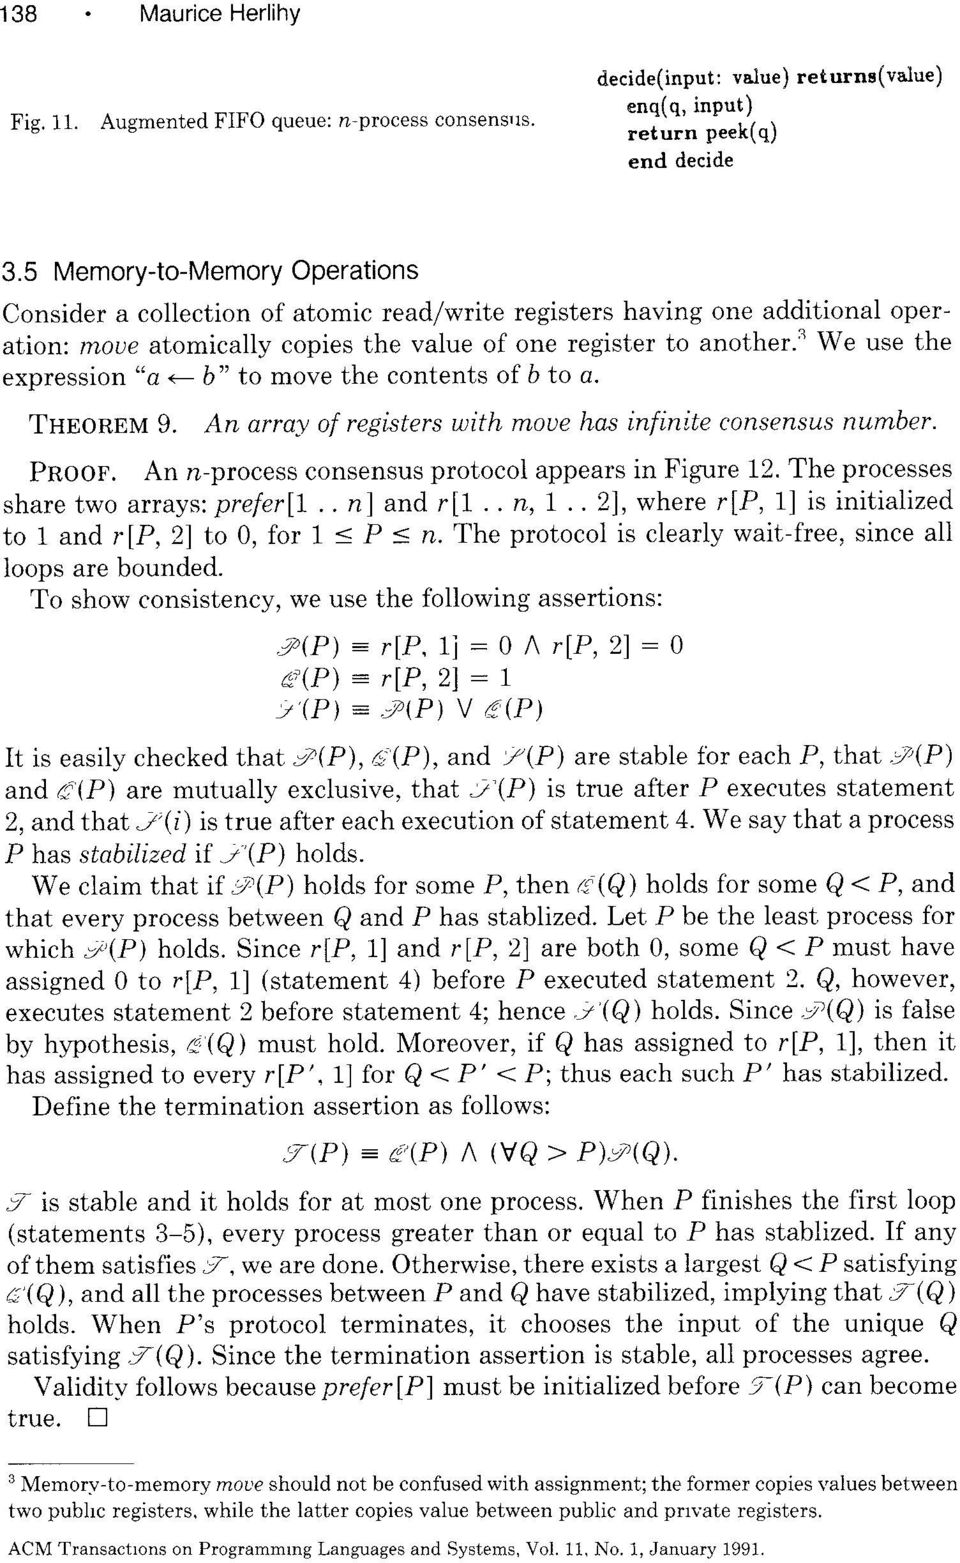 s We use the expression a - b to move the contents of b to a. THEOREM 9. An array of registers with move has infinite consensus number. PROOF. An n-process consensus protocol appears in Figure 12.